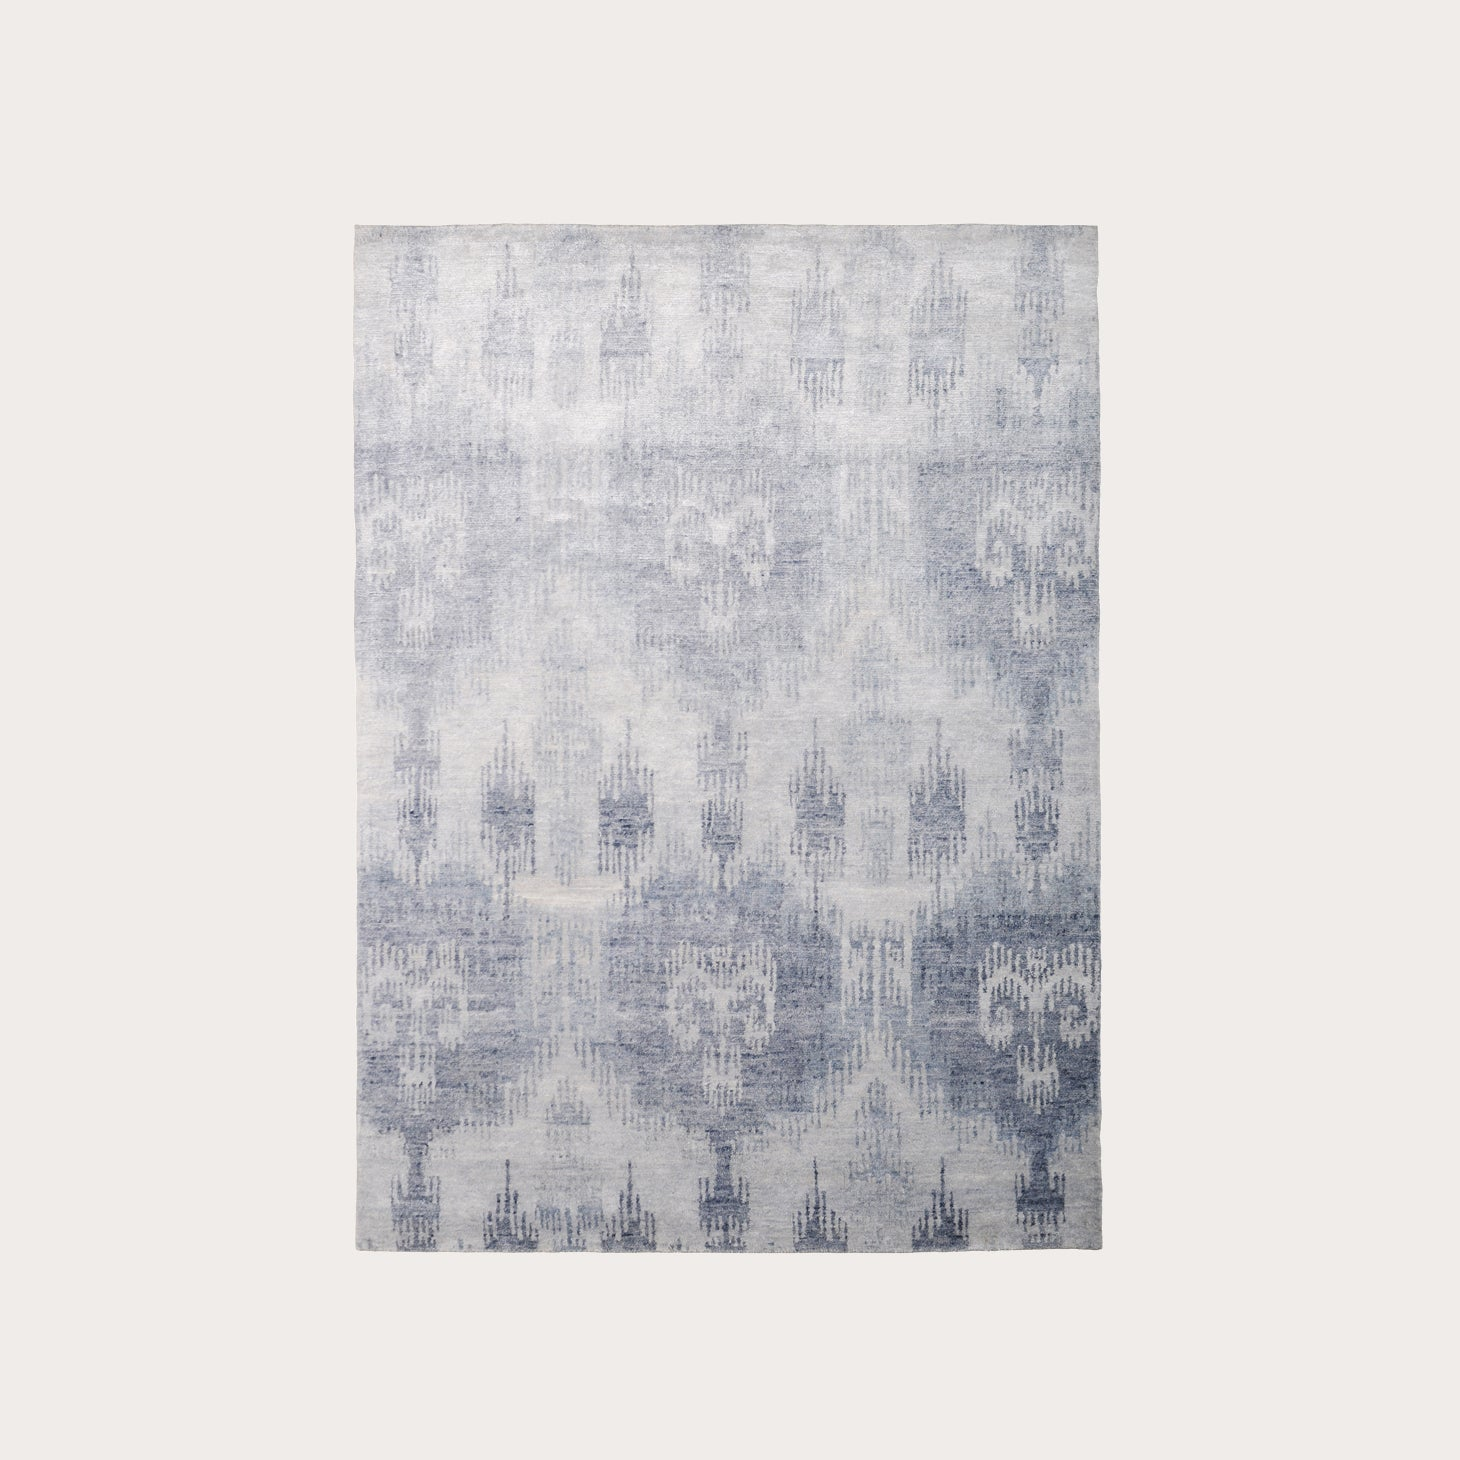 Bamboo Ikat Blue Floor Coverings The Rug Company Designer Furniture Sku: 391-150-11264